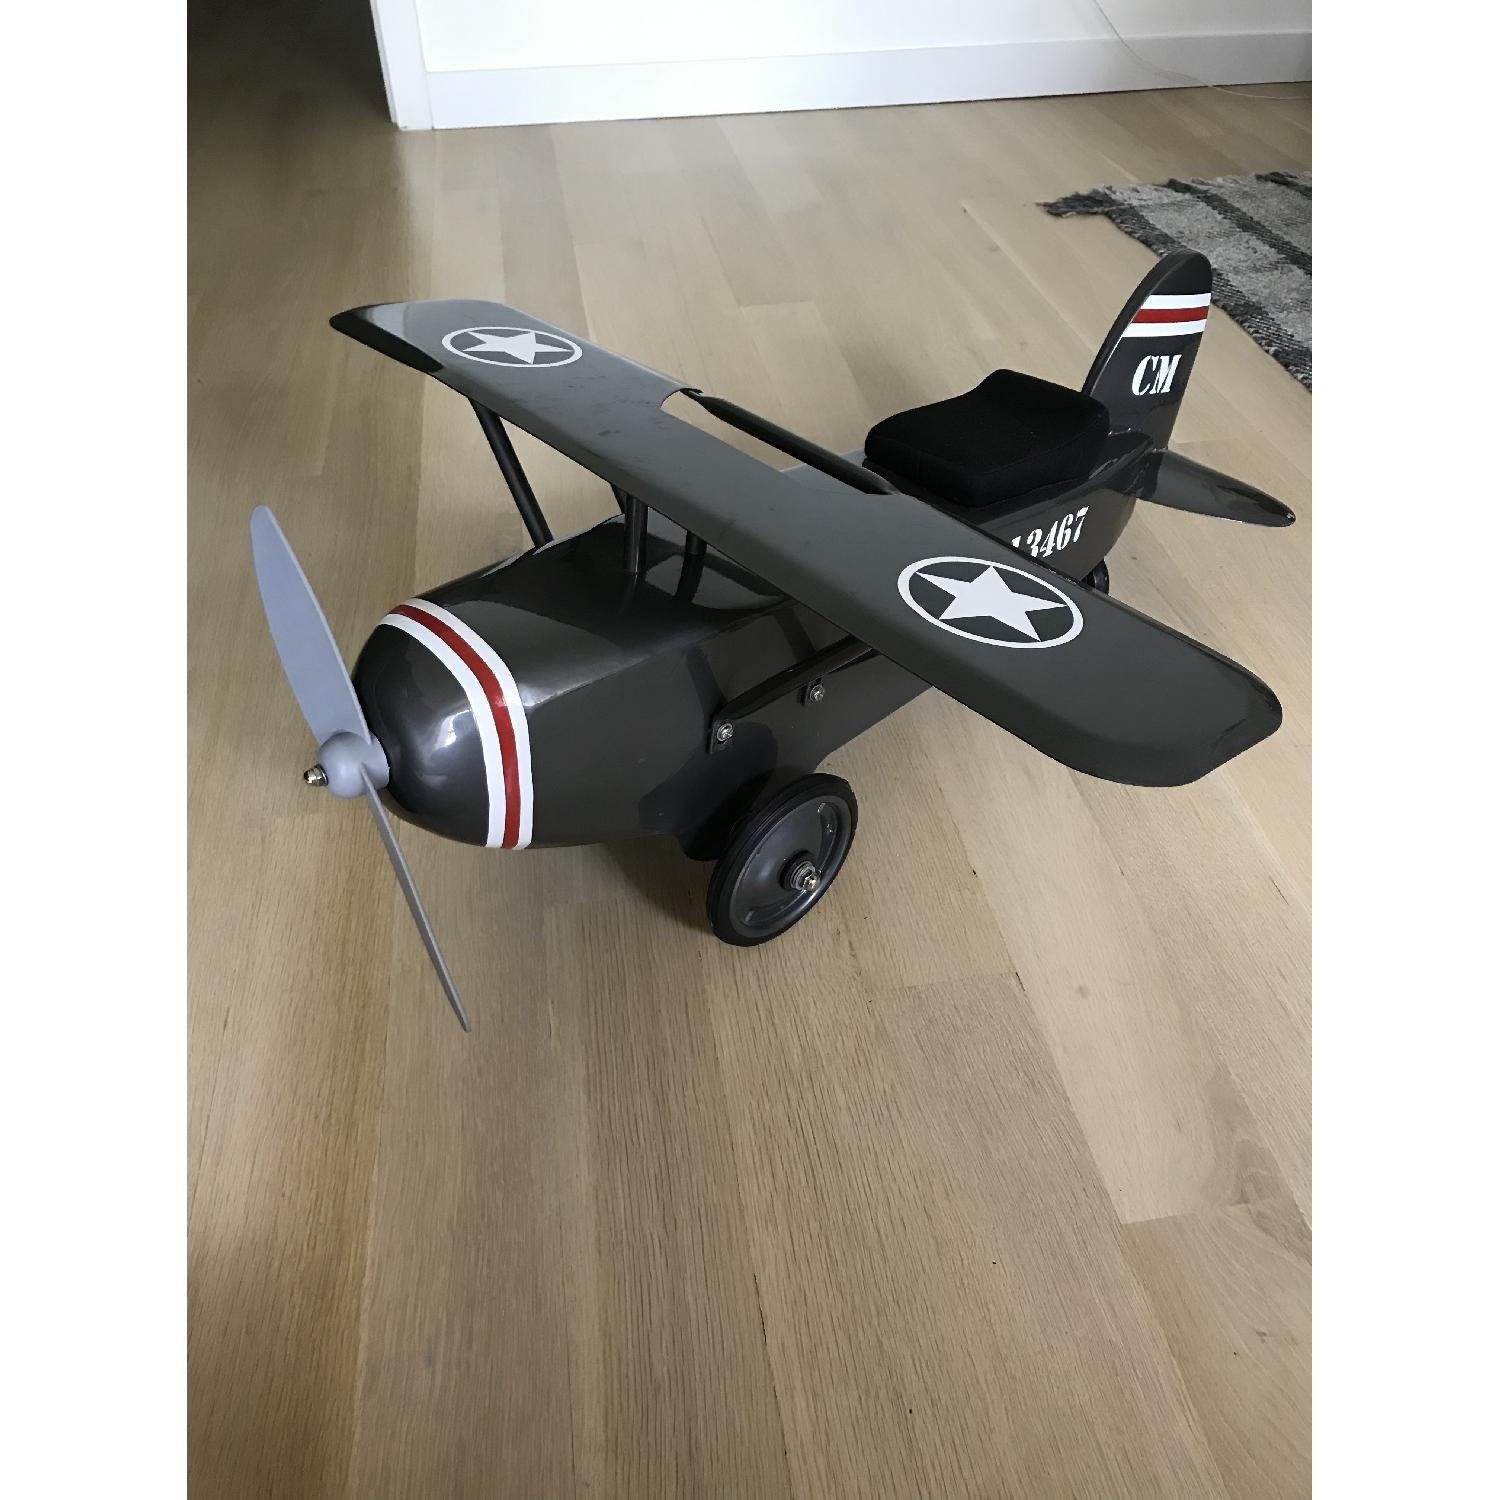 Restoration Hardware Baby and Child Vintage Army Plane Scoot-2